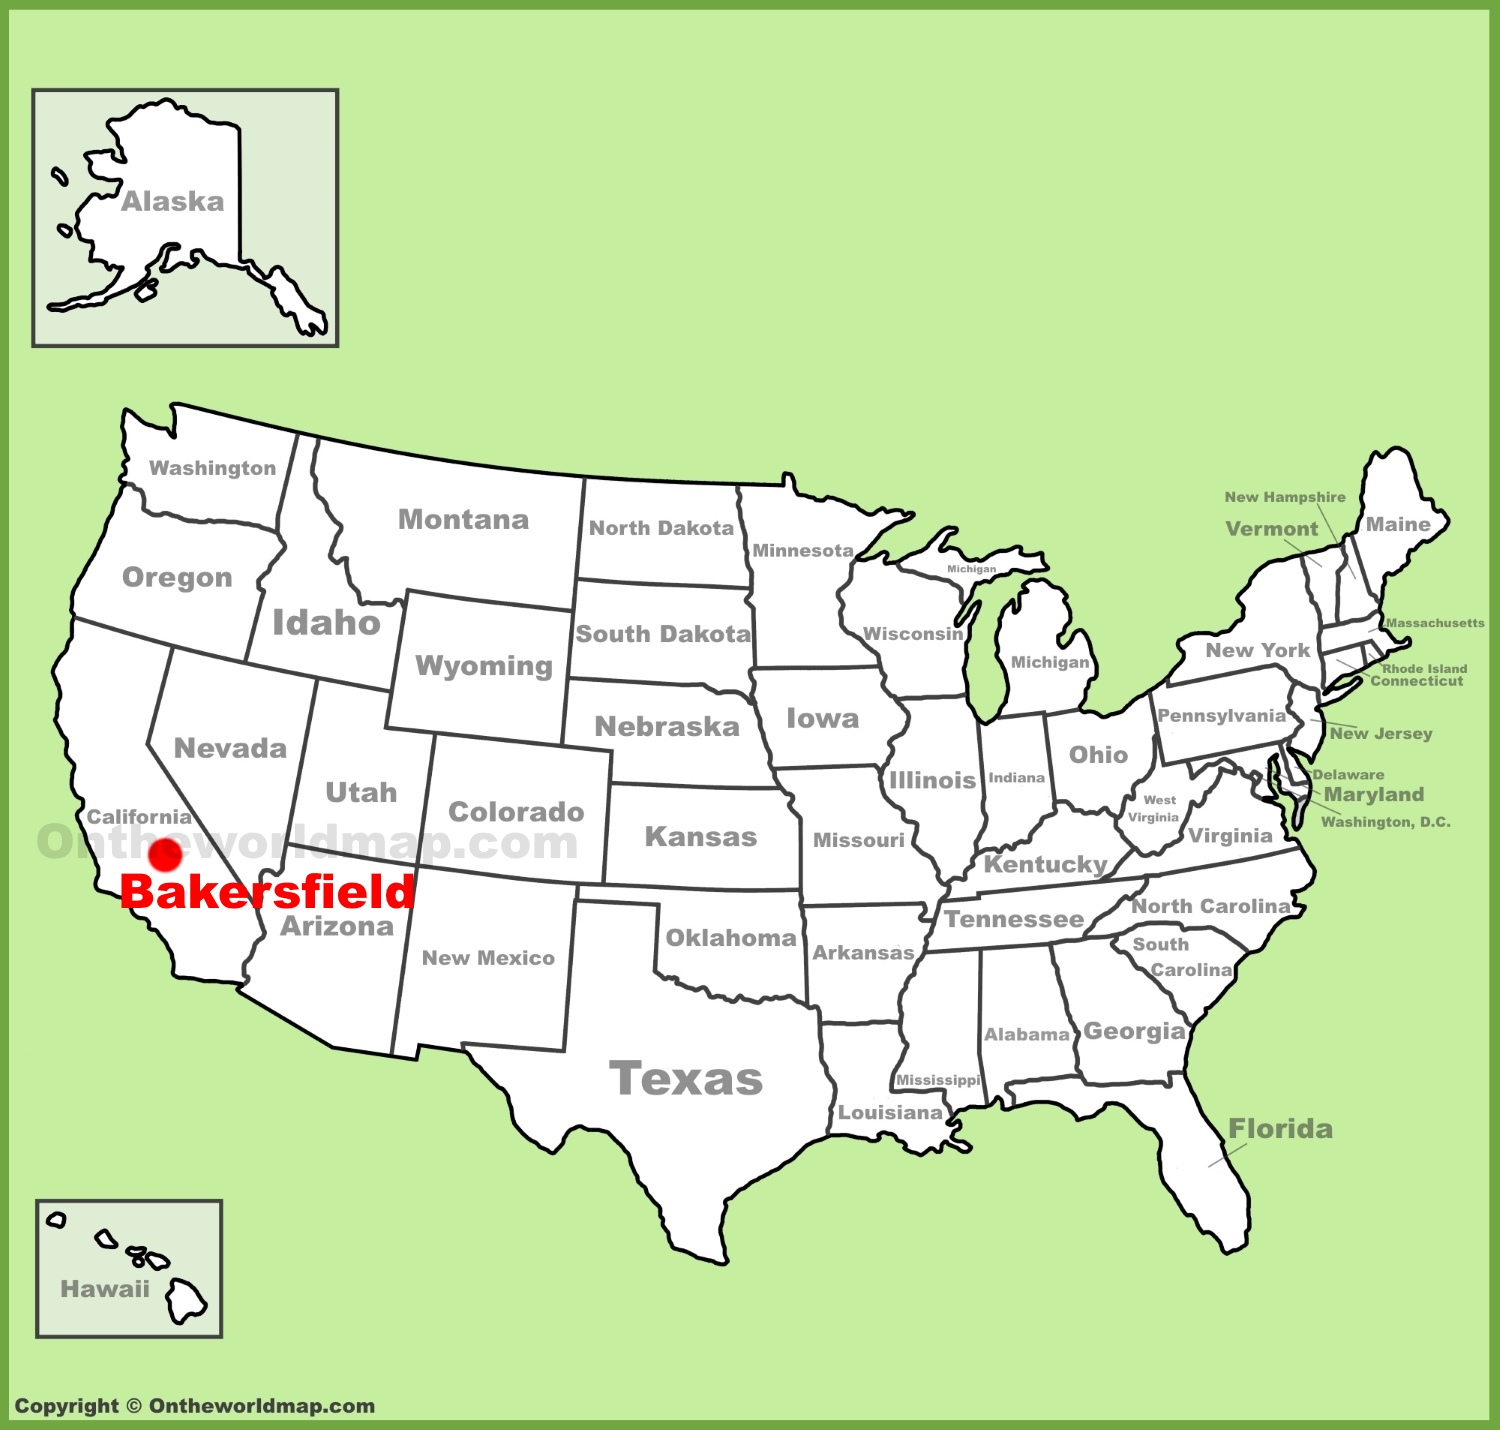 Bakersfield location on the U.S. Map